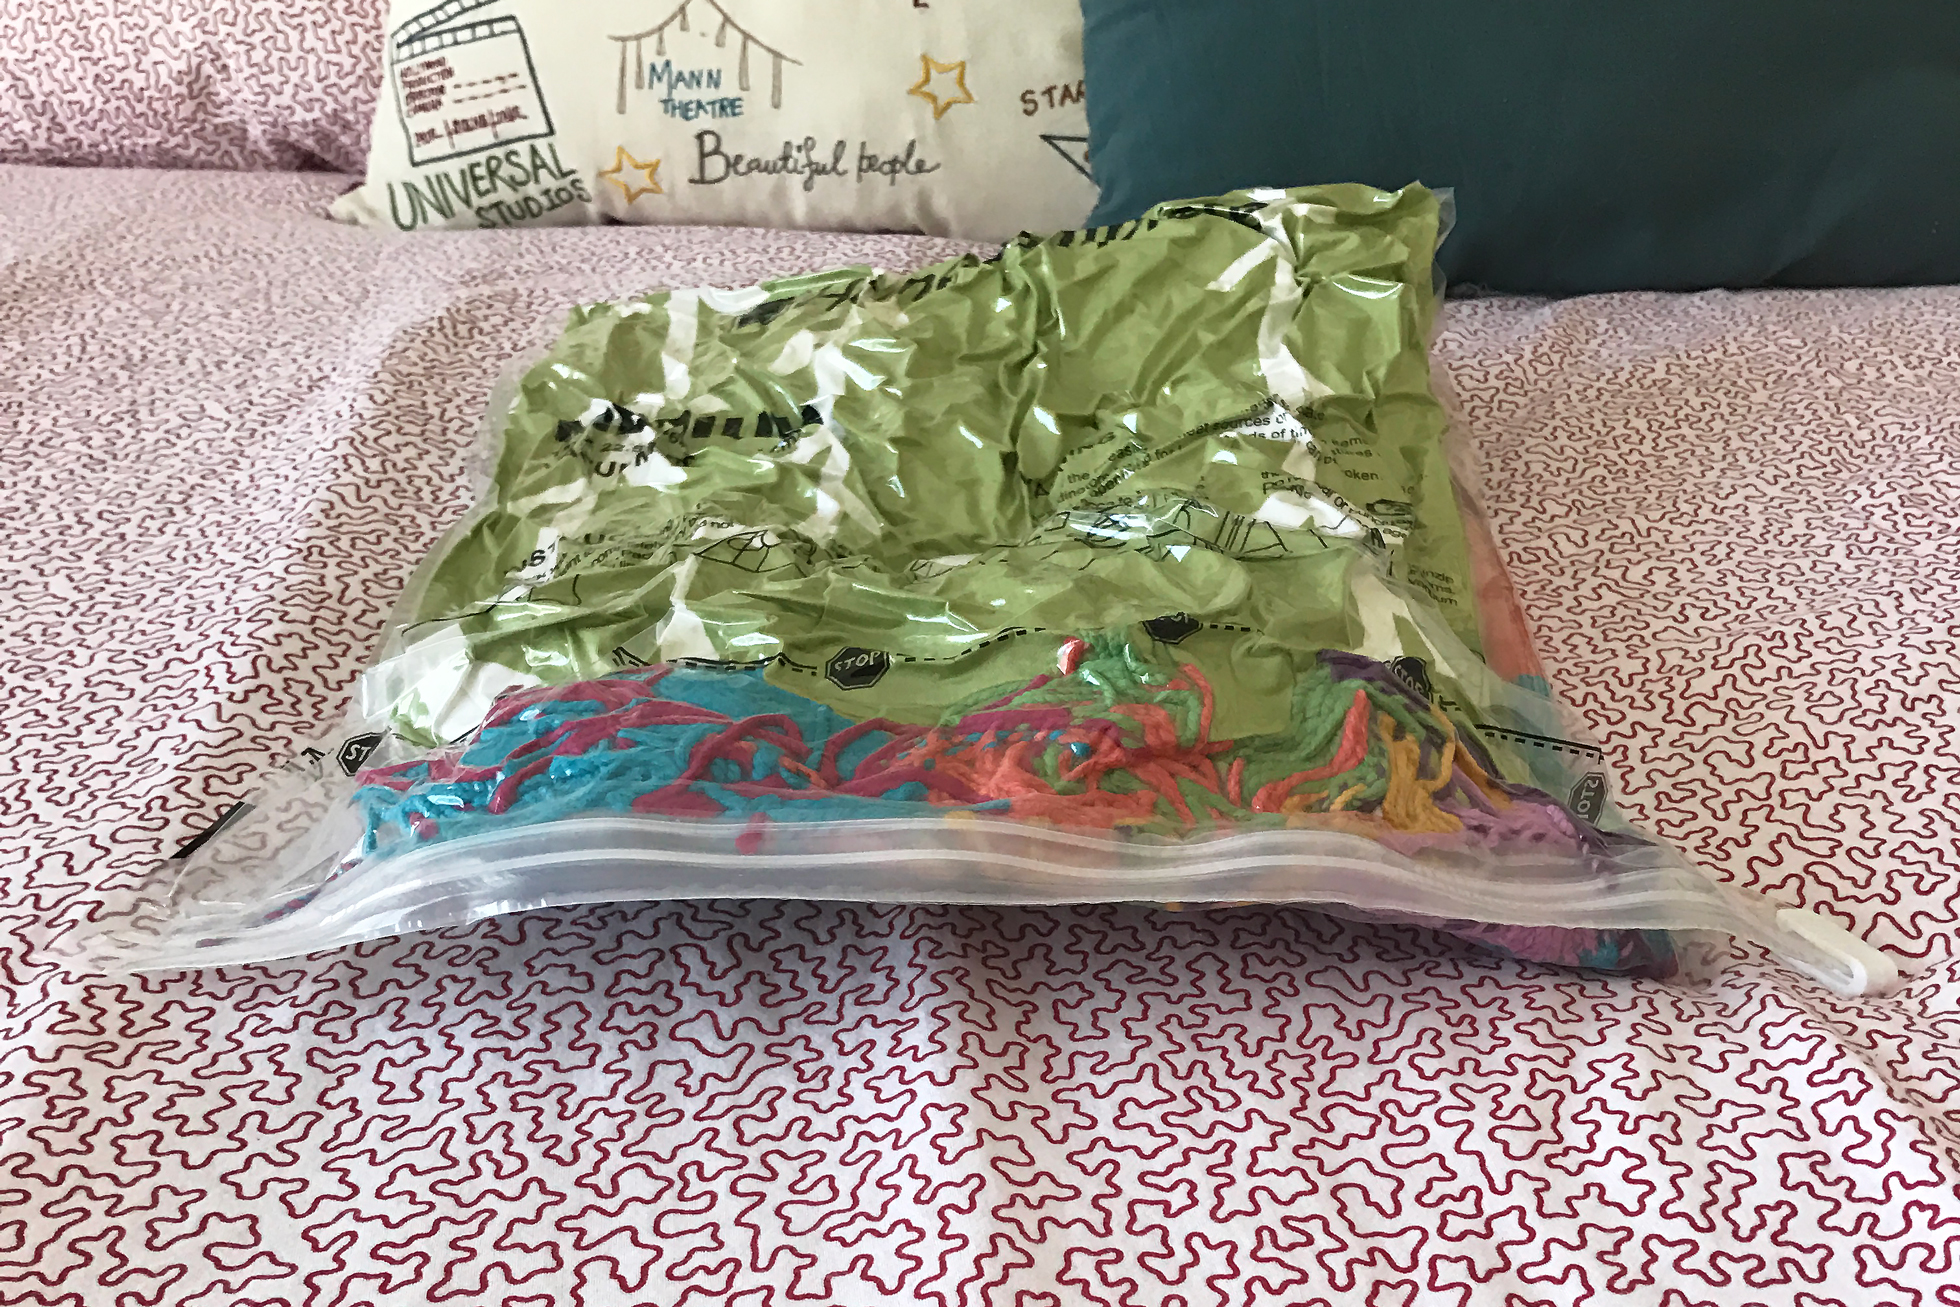 A colorful blanket and green pillow in vacuum sealed bag